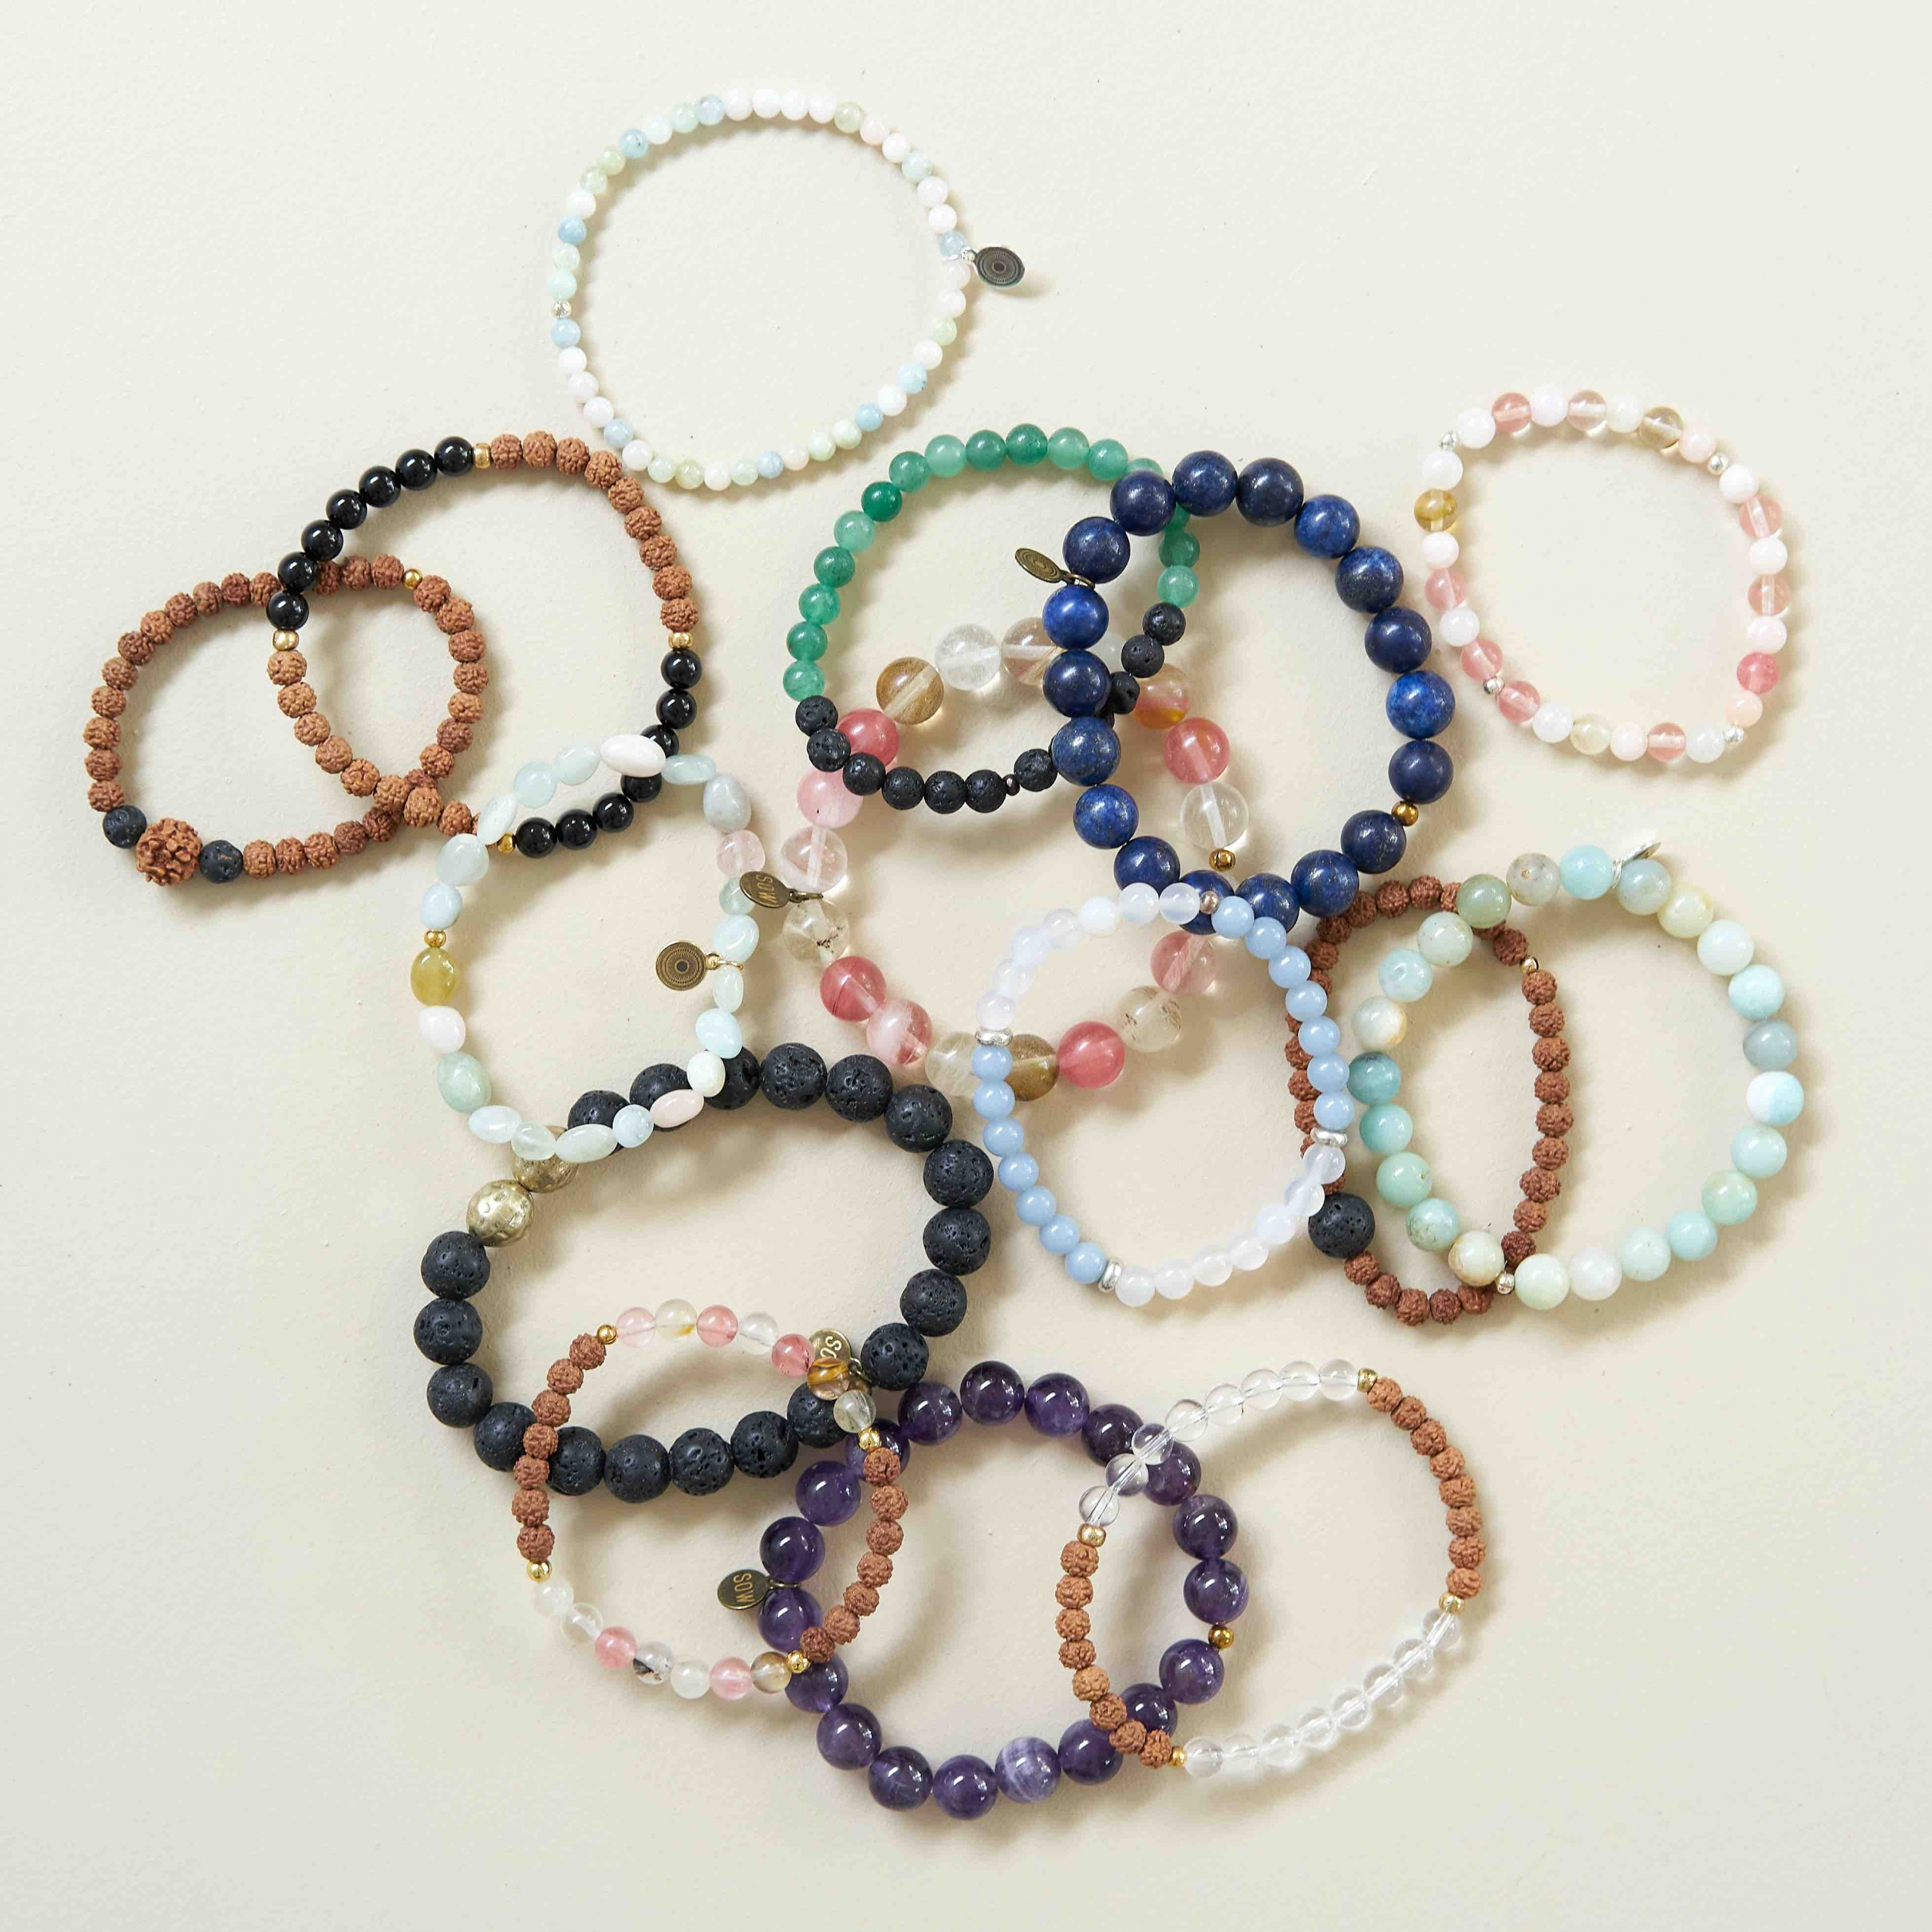 Handmade bracelets in pile on a table